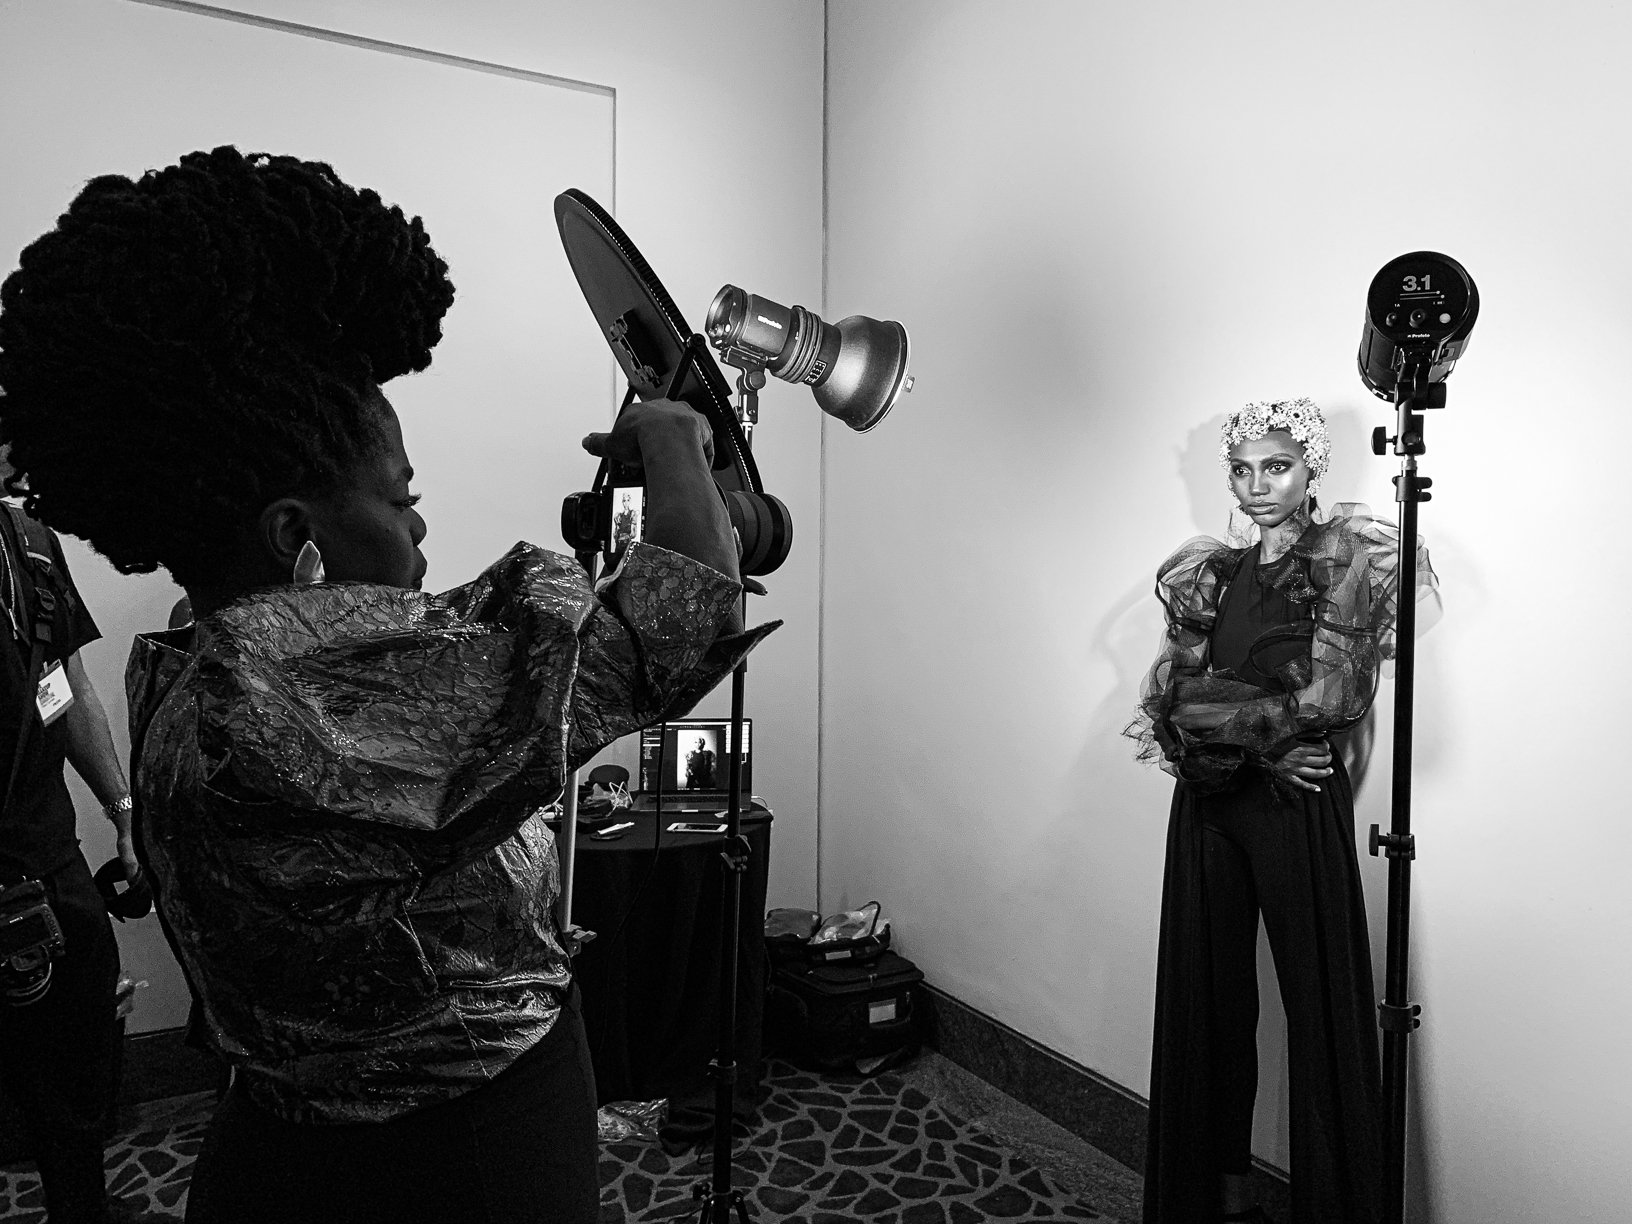 Behind the scenes at The Makeup Show, Houston, TX: Danessa Myricks photoshoot